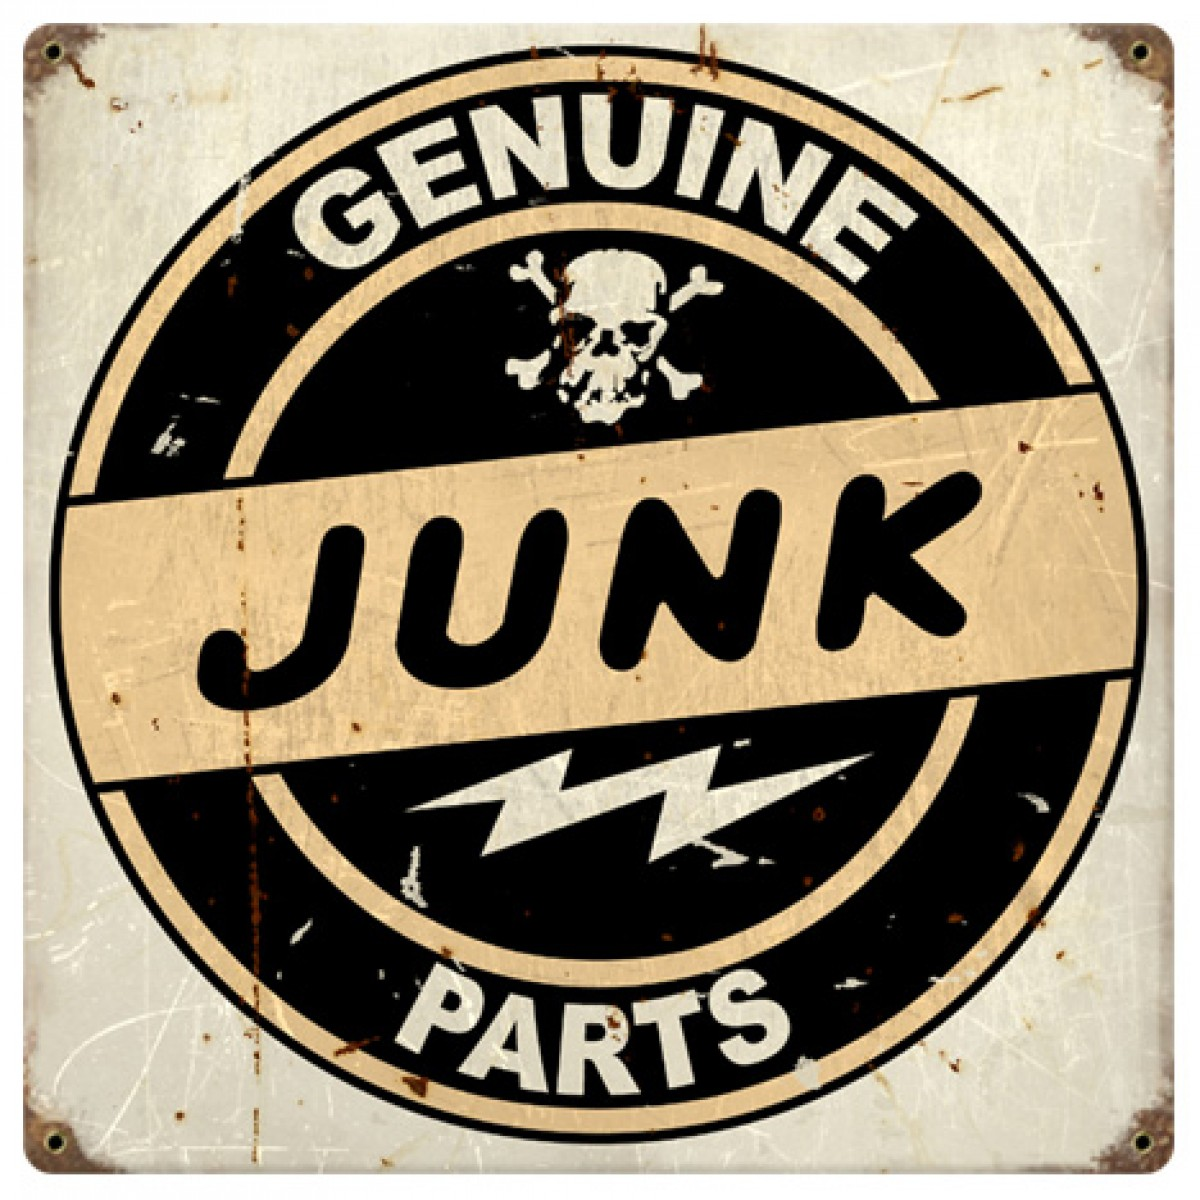 junk parts hot rod accessories garage gear and more. Black Bedroom Furniture Sets. Home Design Ideas